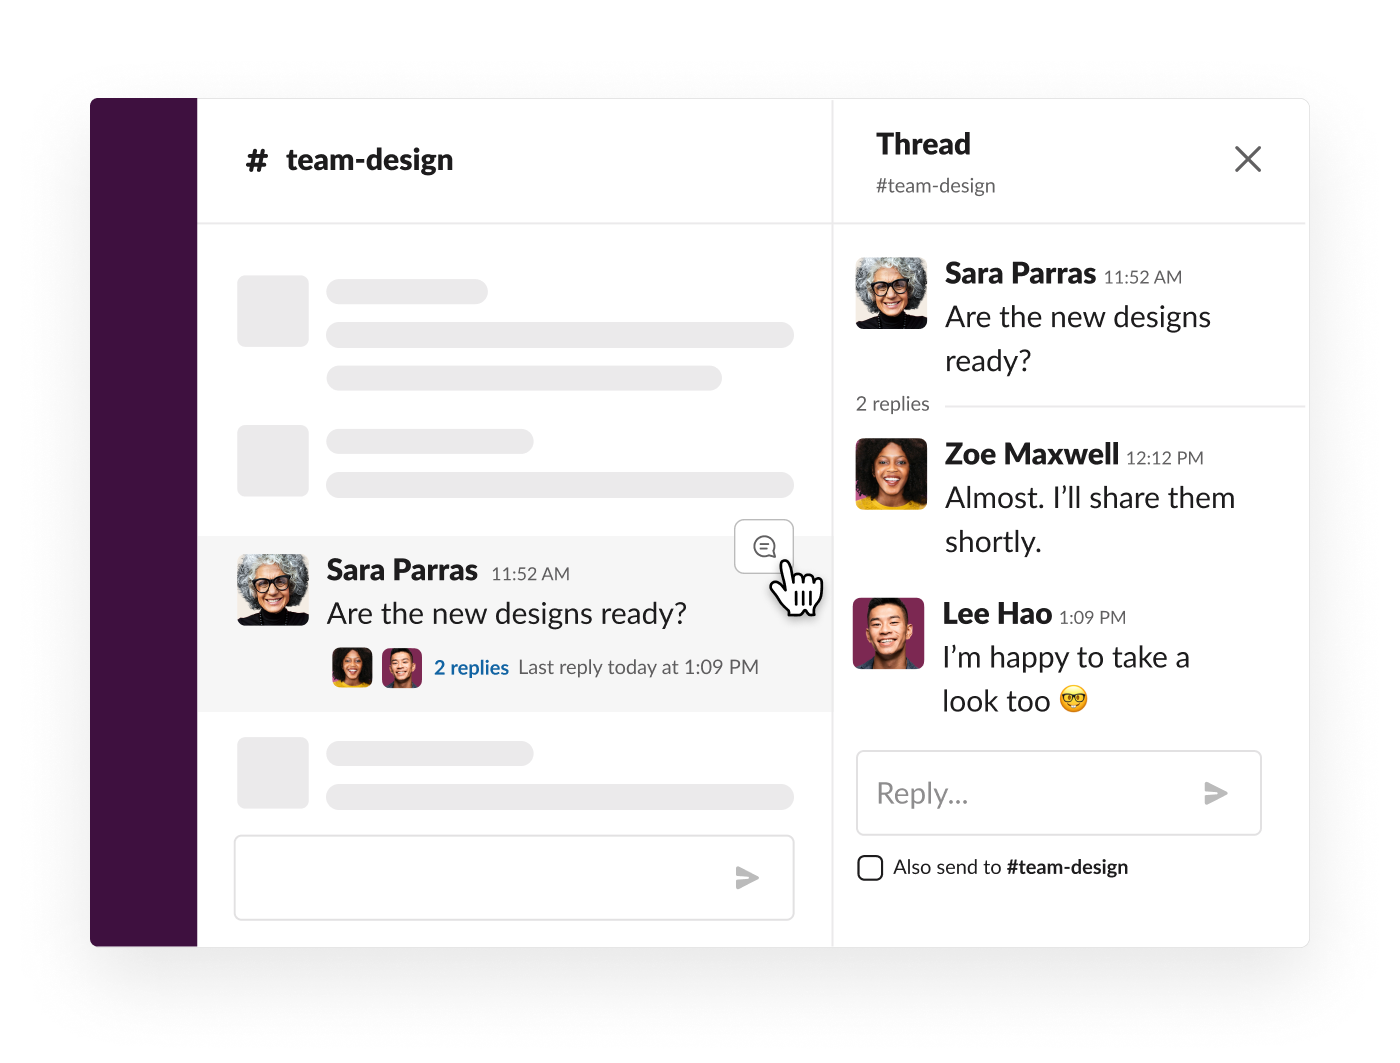 A thread to keep discussion organised in Slack